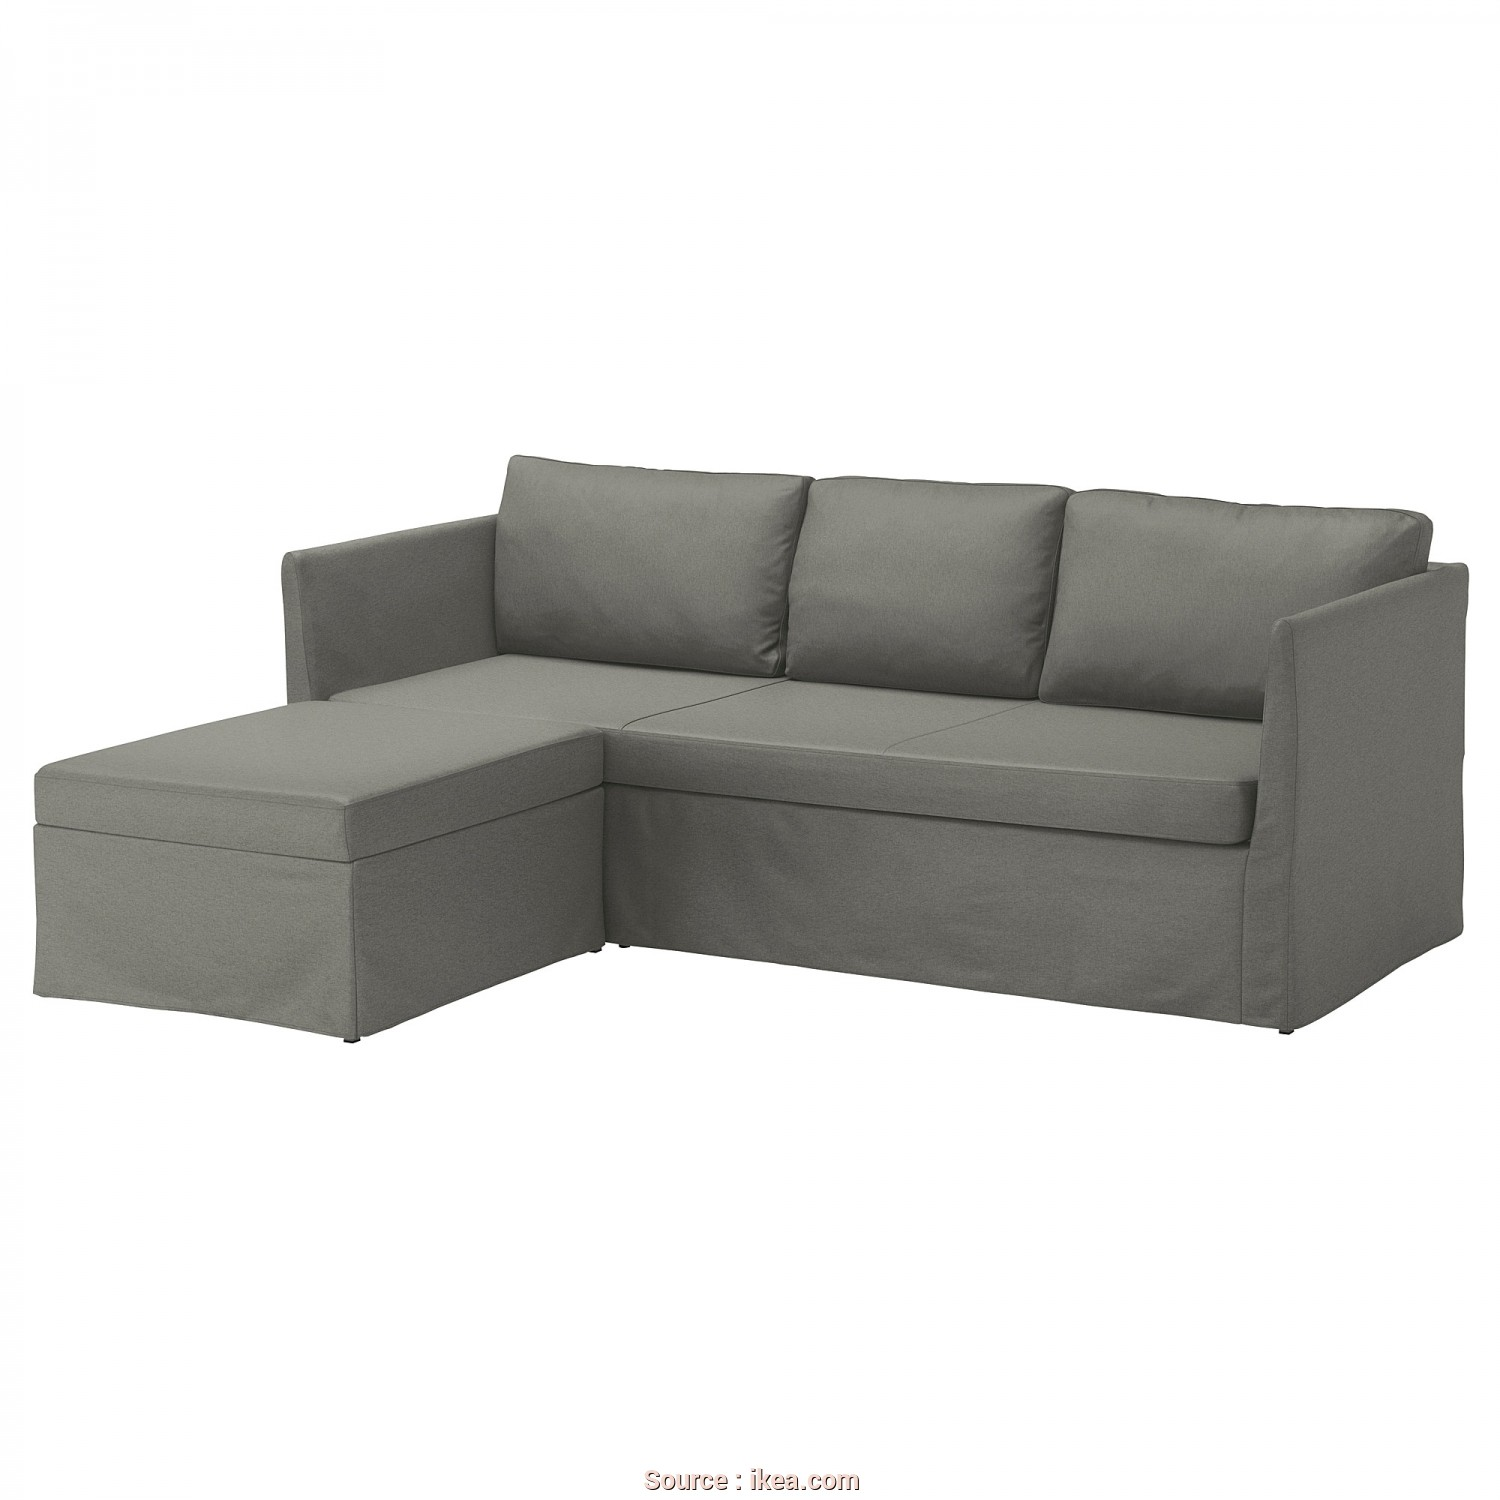 Backabro Ikea Polska, Classy IKEA BRÅTHULT Corner Sofa-Bed, Sit Comfortably Thanks To, Resilient Foam, Springy